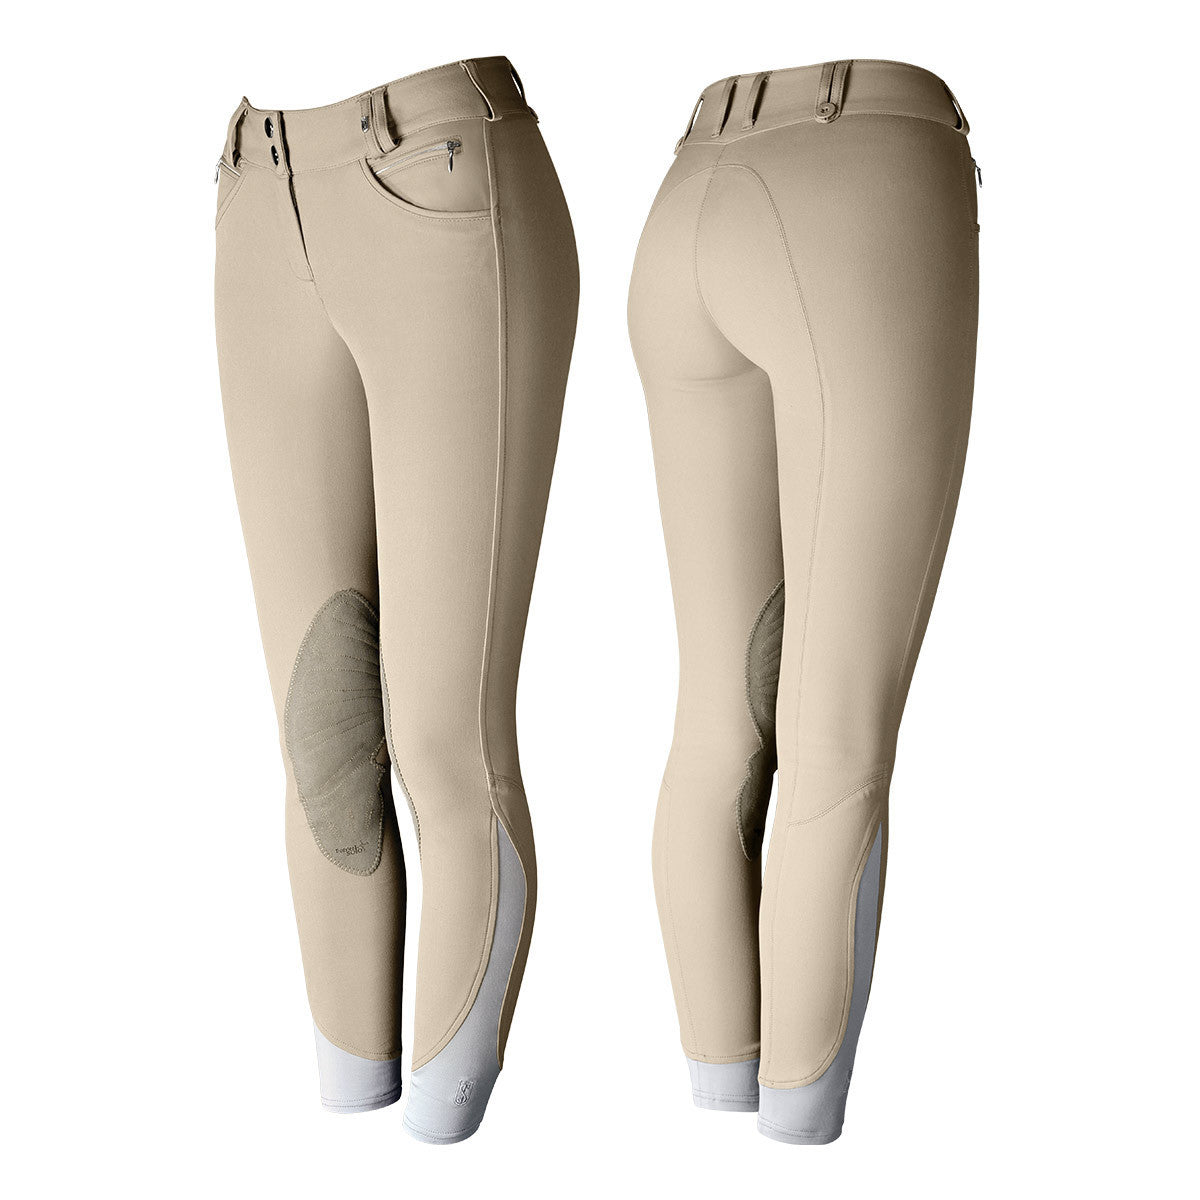 Tredstep Solo Classic Knee Patch Breeches